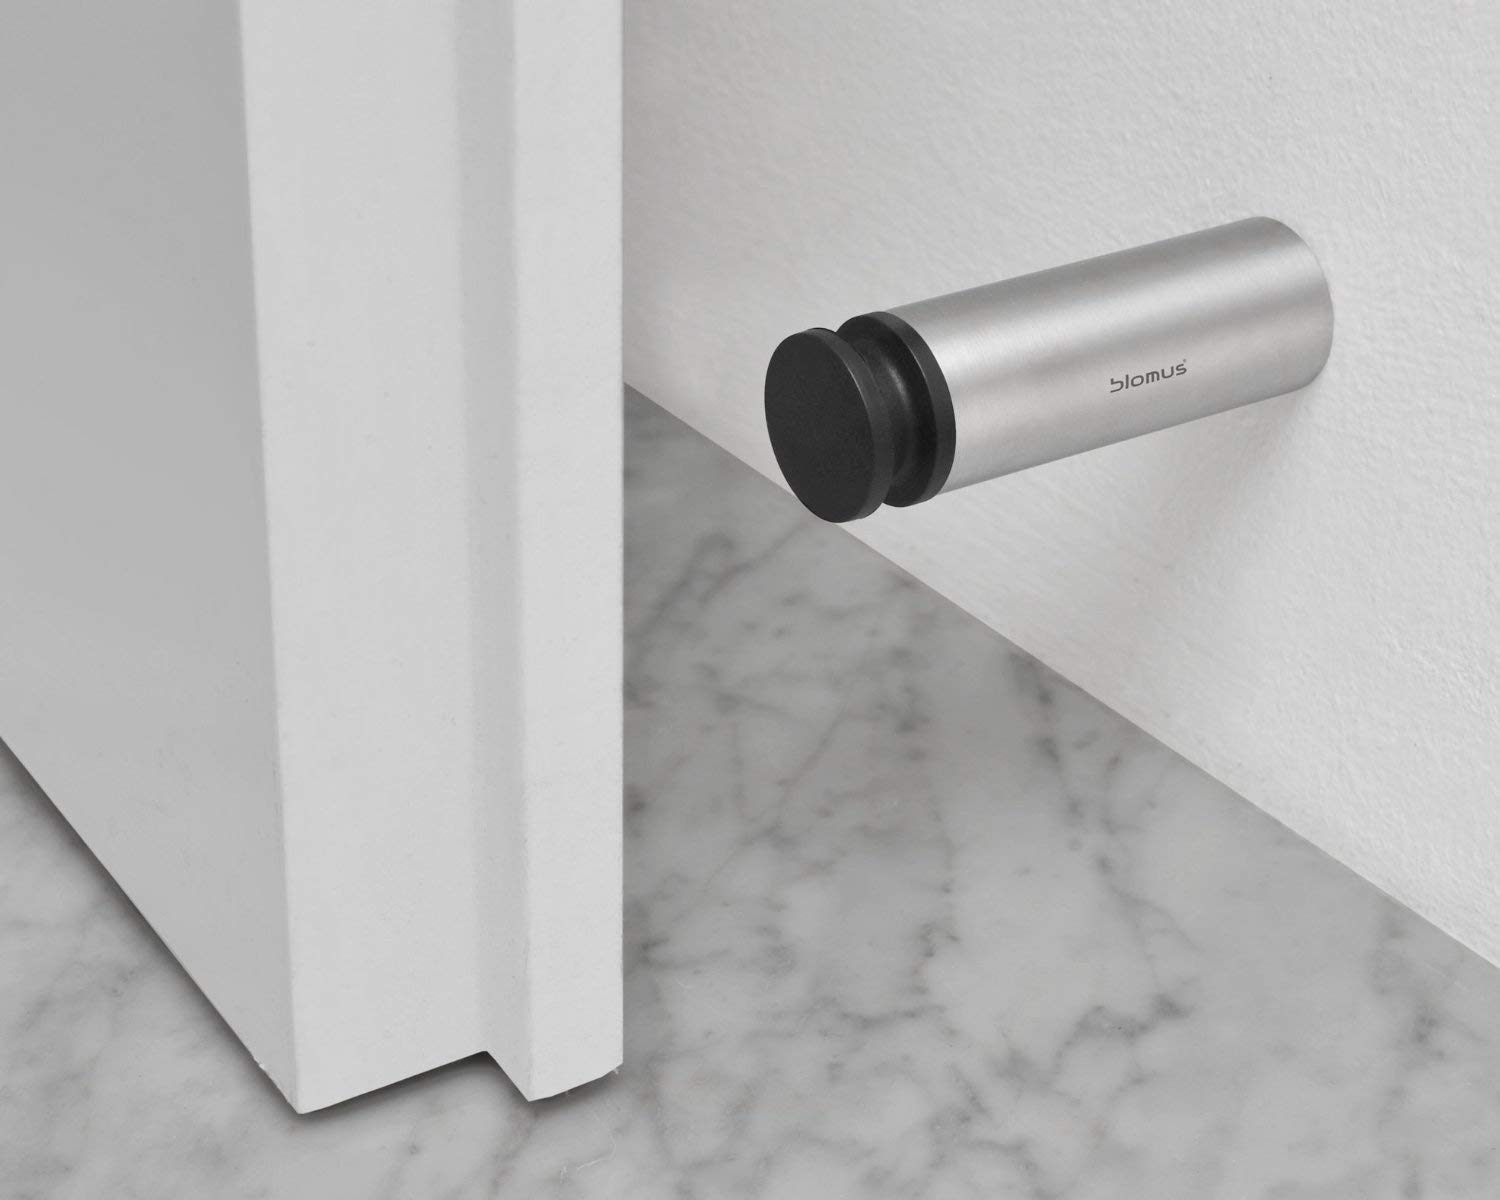 Wall Mounted Door Stop.Blomus 8 Cm Stainless Steel Plastic Entra Wall Mounted Door Stop